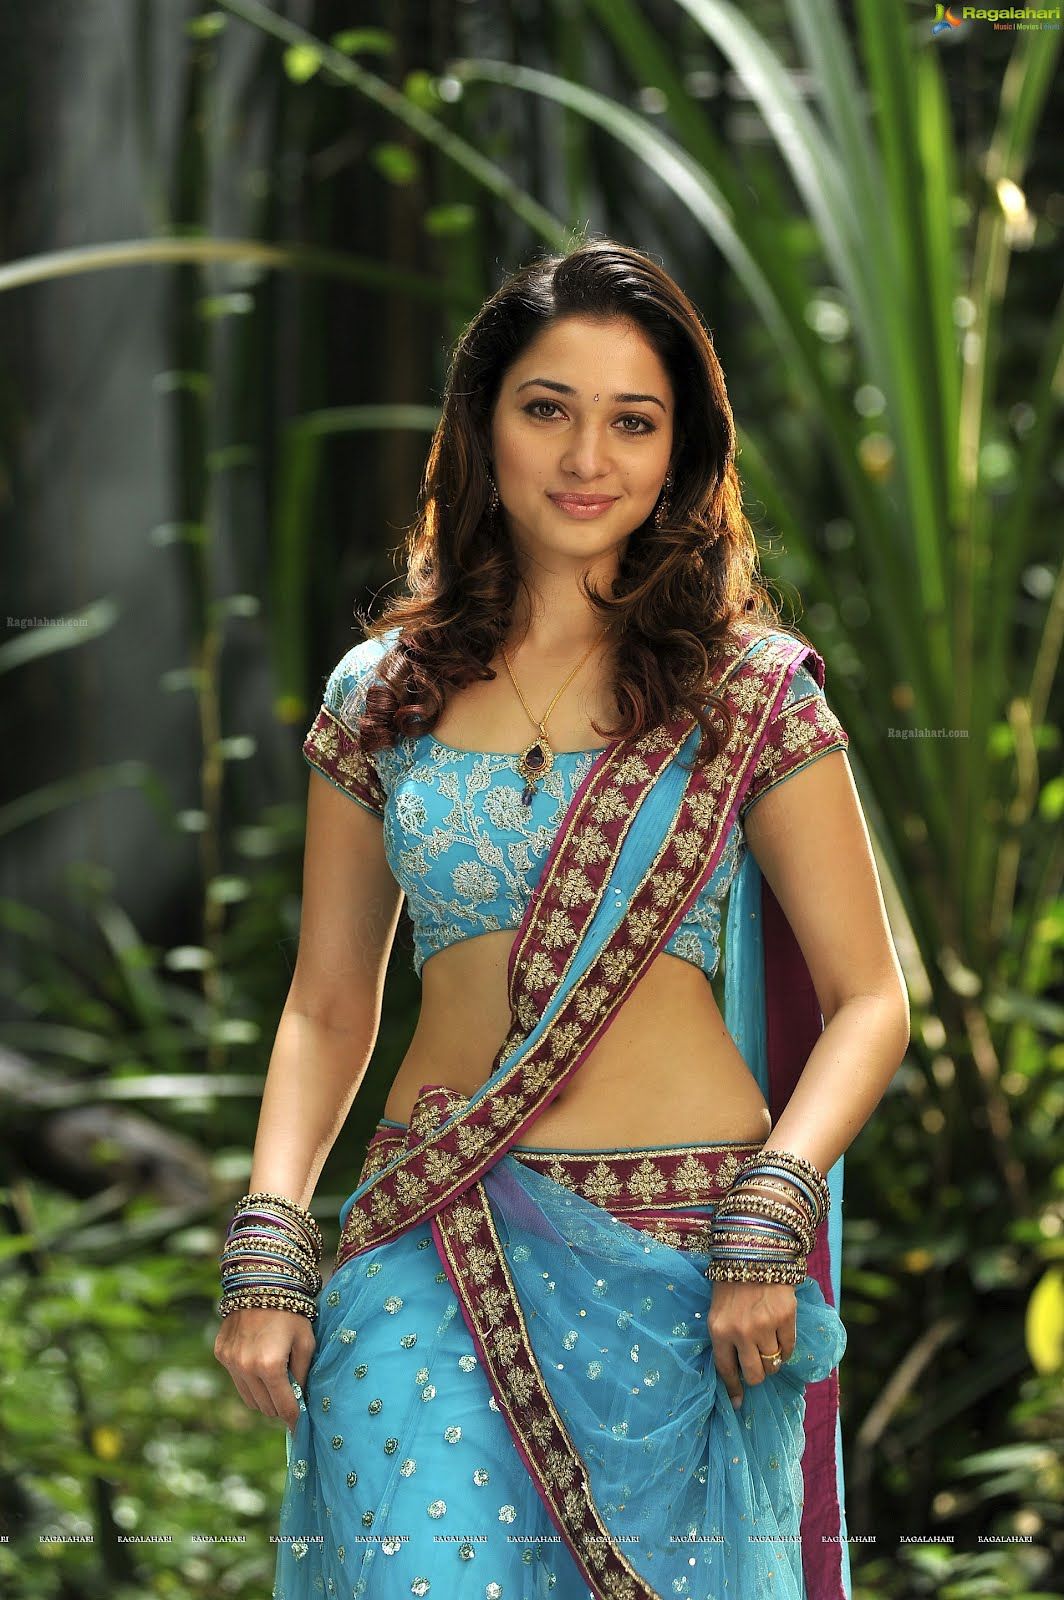 Tamanna Blue Saree: Desi Shotz: Tamanna Hot Navel Show In Blue Saree